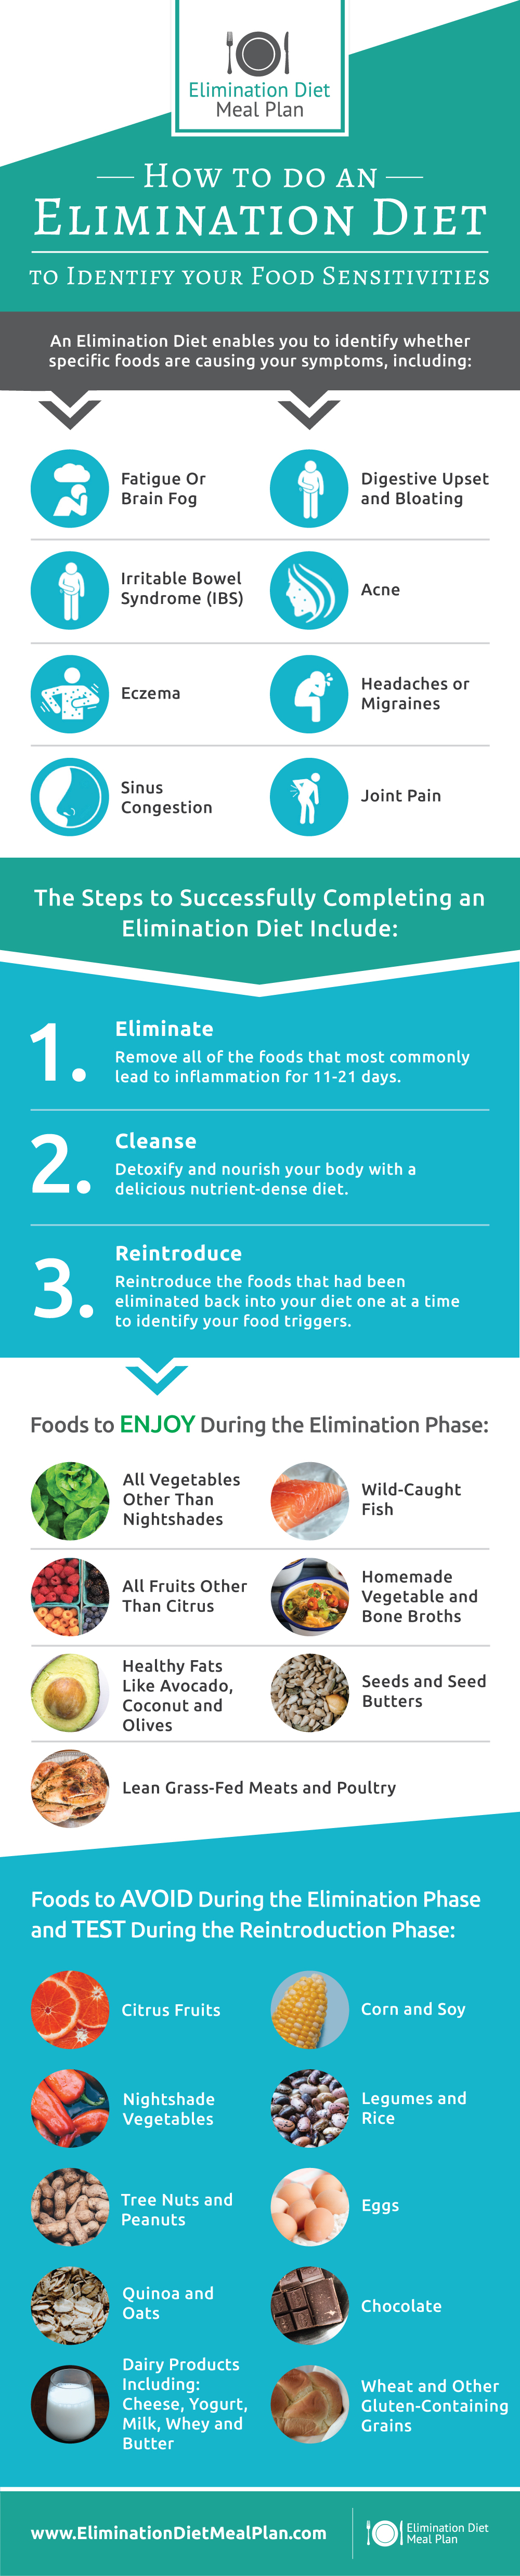 Infographic - How to Complete an Elimination Diet to Identify your Food Sensitivities!